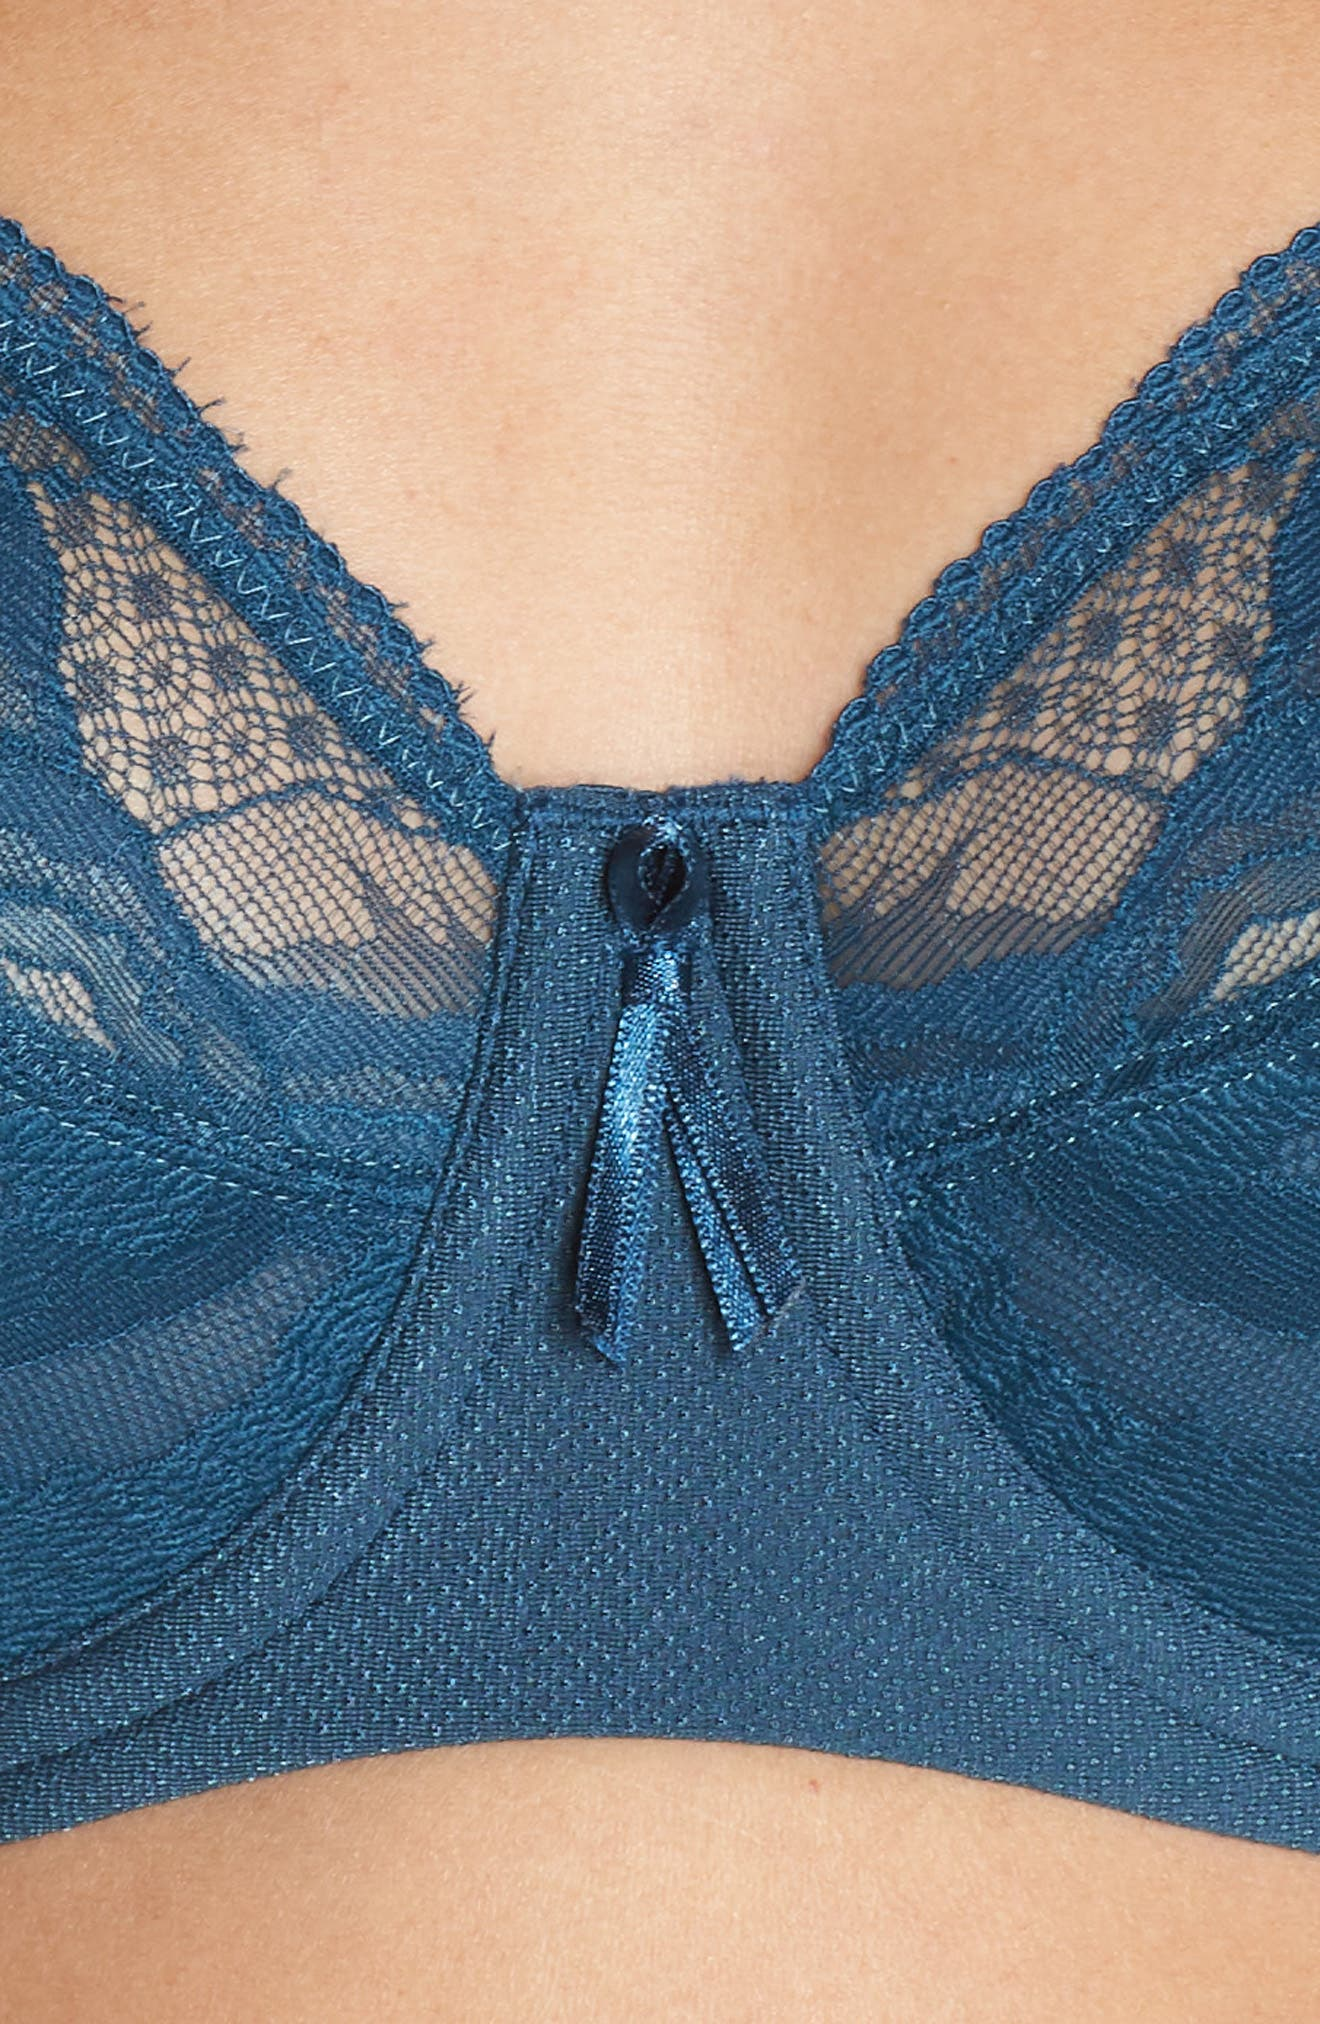 Top Tier Full-Figure Underwire Bra,                             Alternate thumbnail 4, color,                             MAJOLICA BLUE